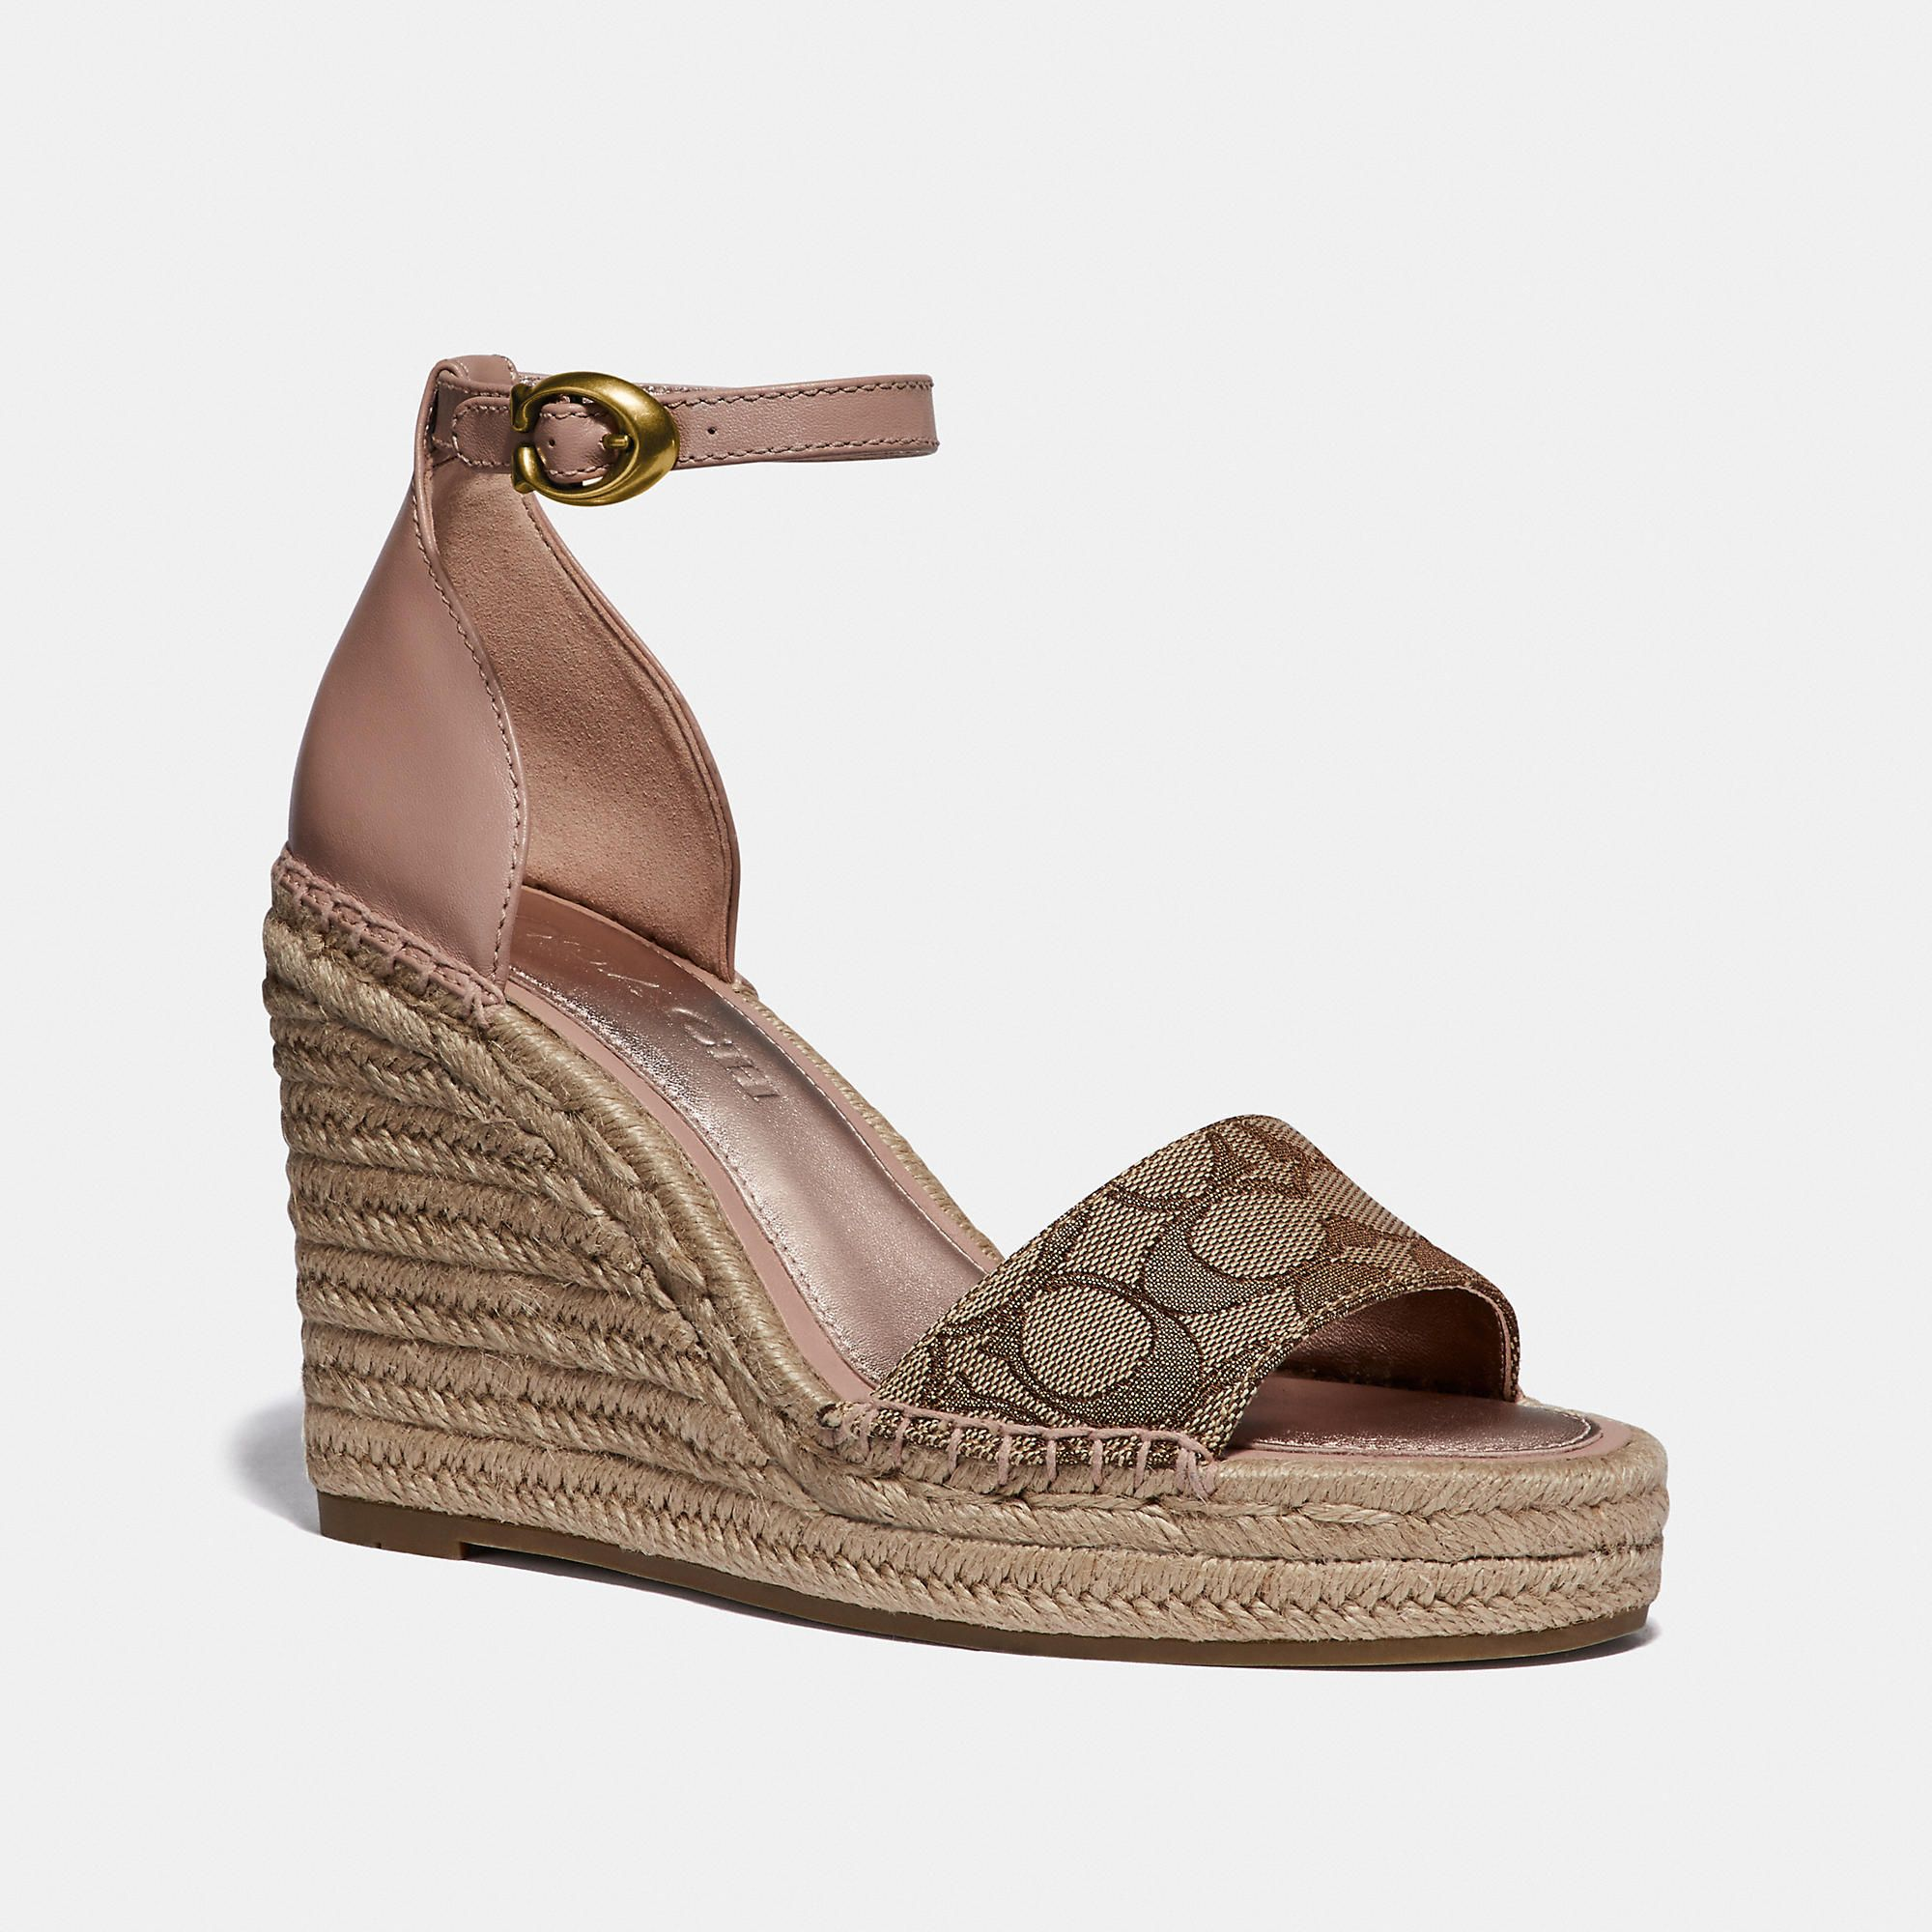 f6171fb9e19 Coach Kit Wedge Espadrille in 2019 | Products | Espadrilles, Wedges ...